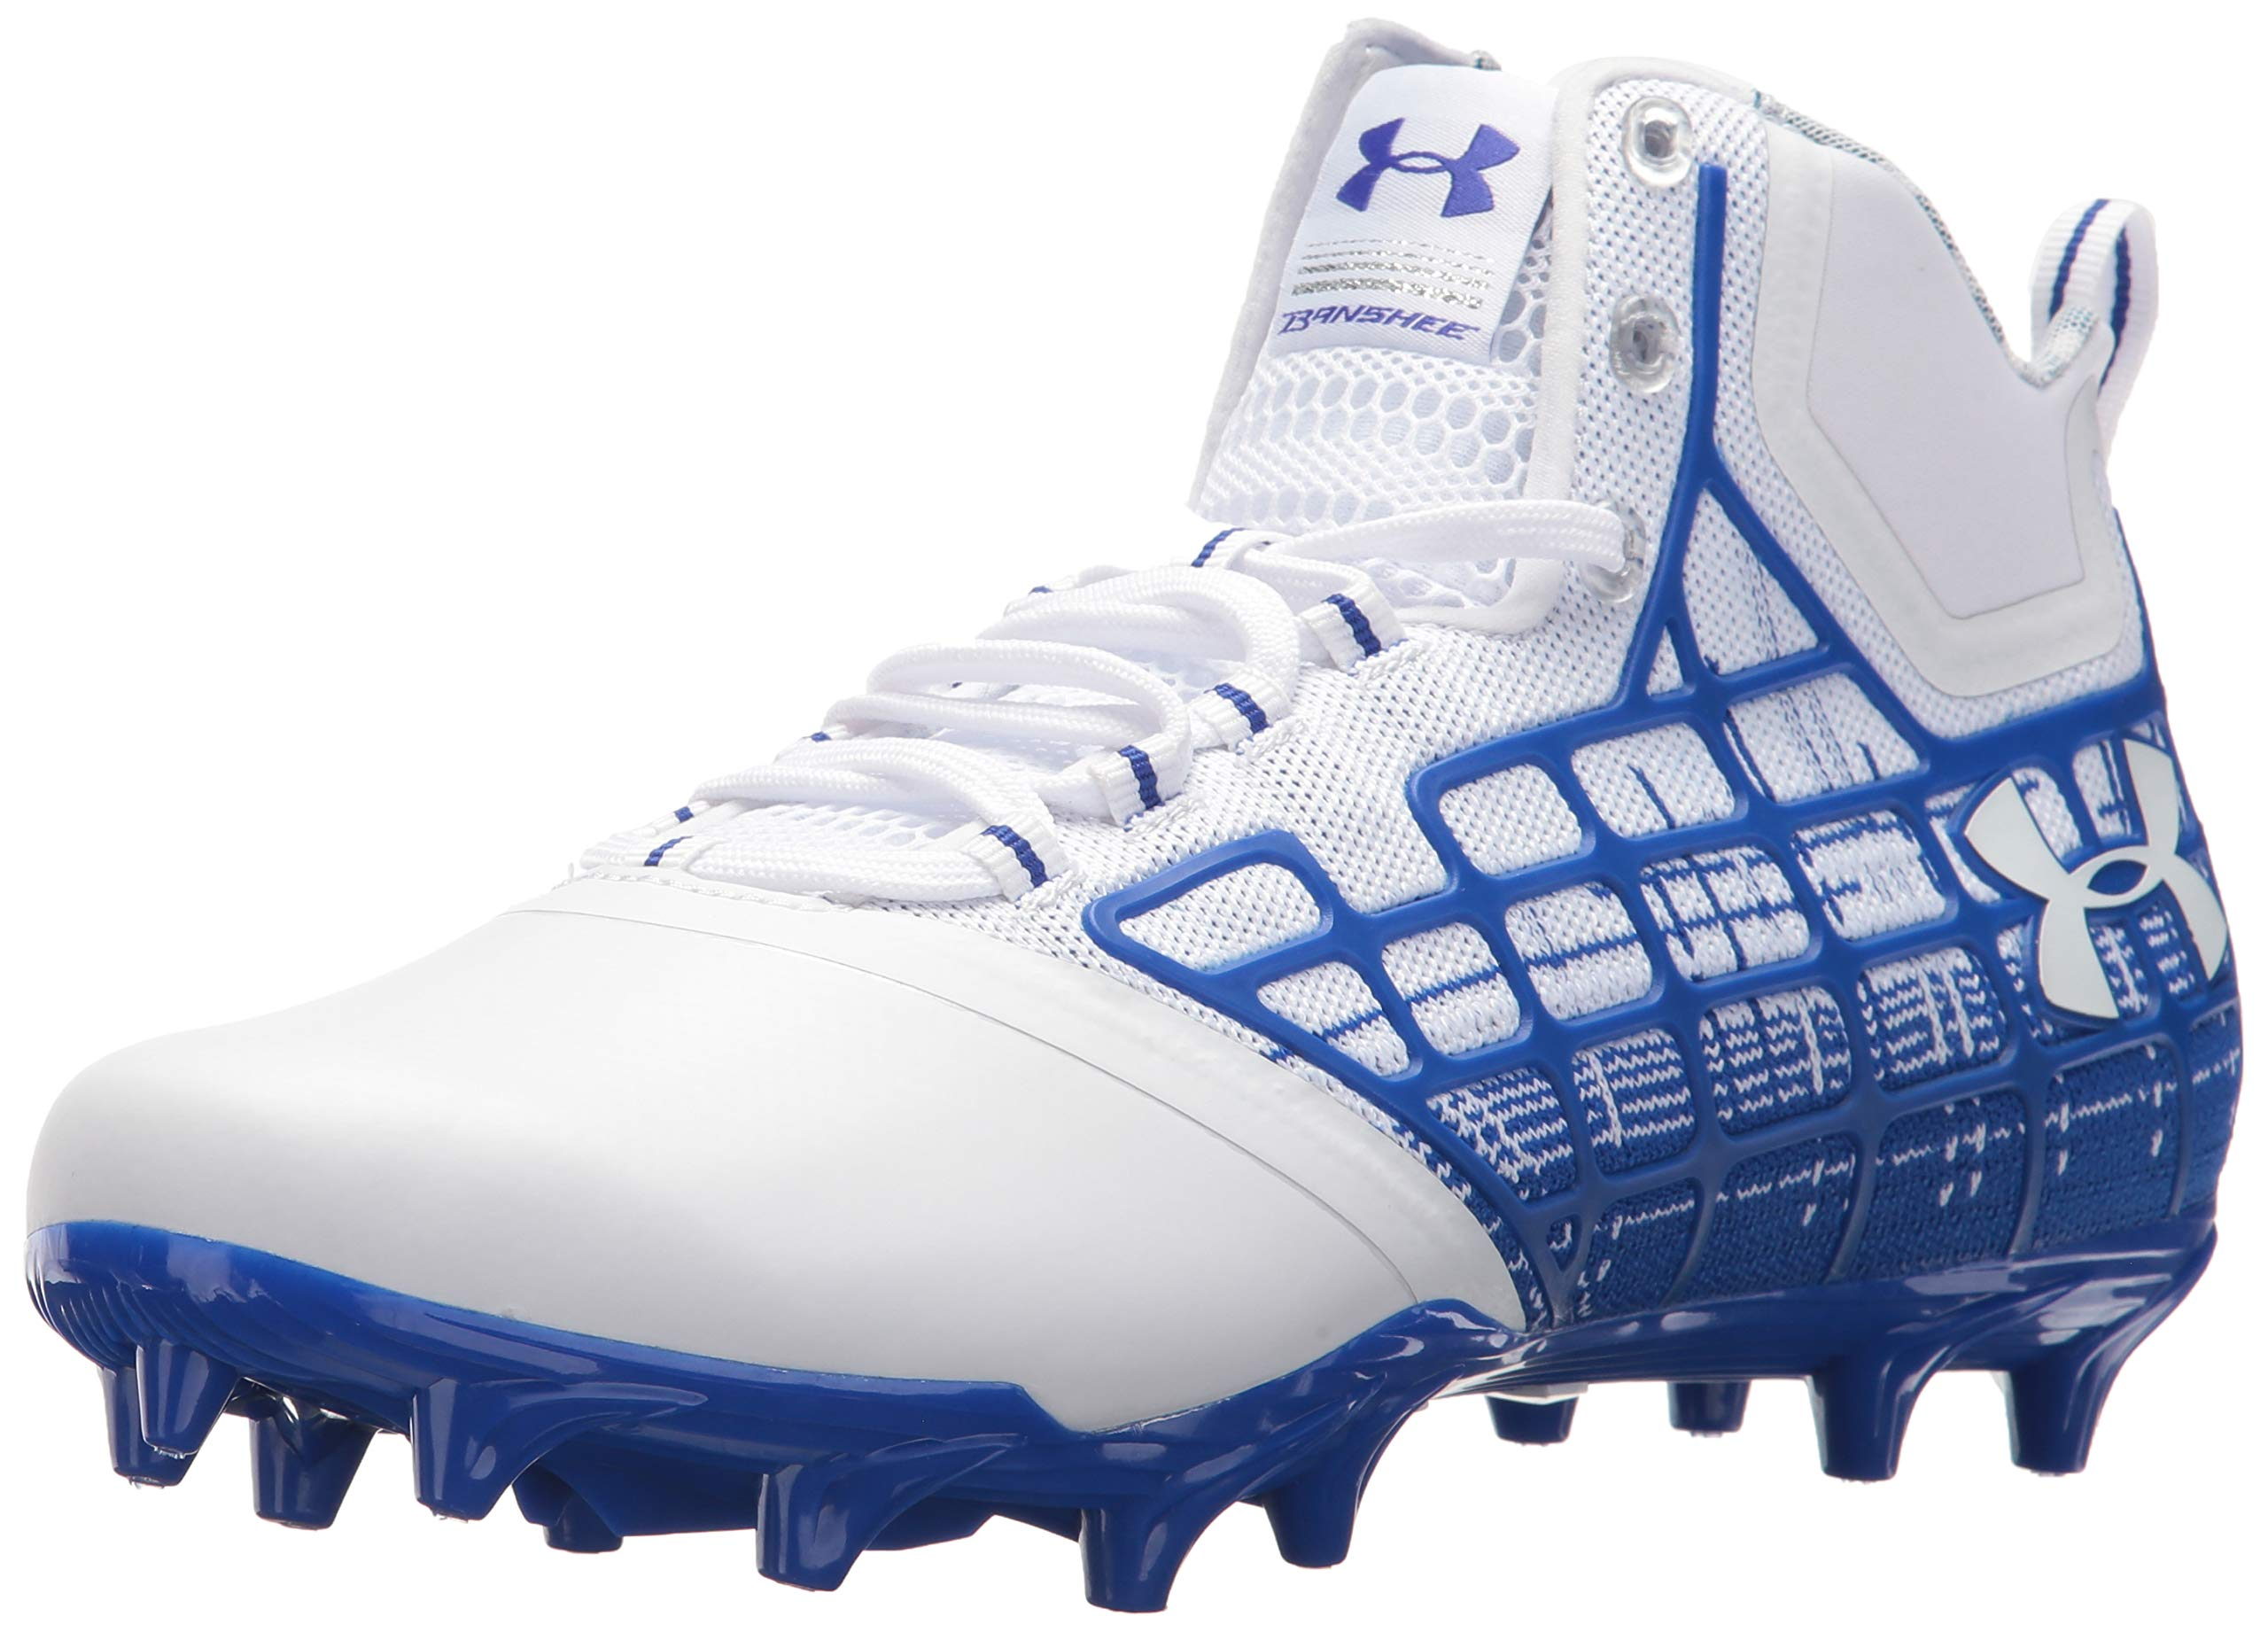 Under Armour Men's Banshee Mid MC Lacrosse Shoe, White (141)/Team Royal, 7